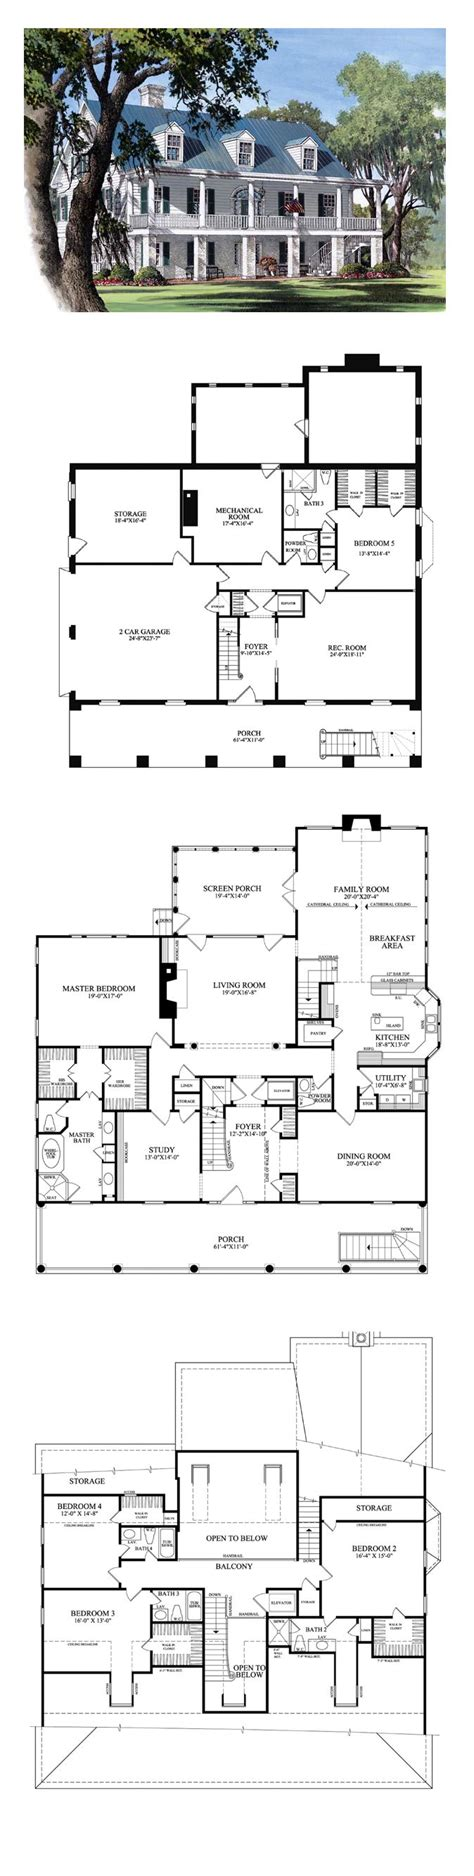 southern plantation floor plans best 25 architectural house plans ideas on